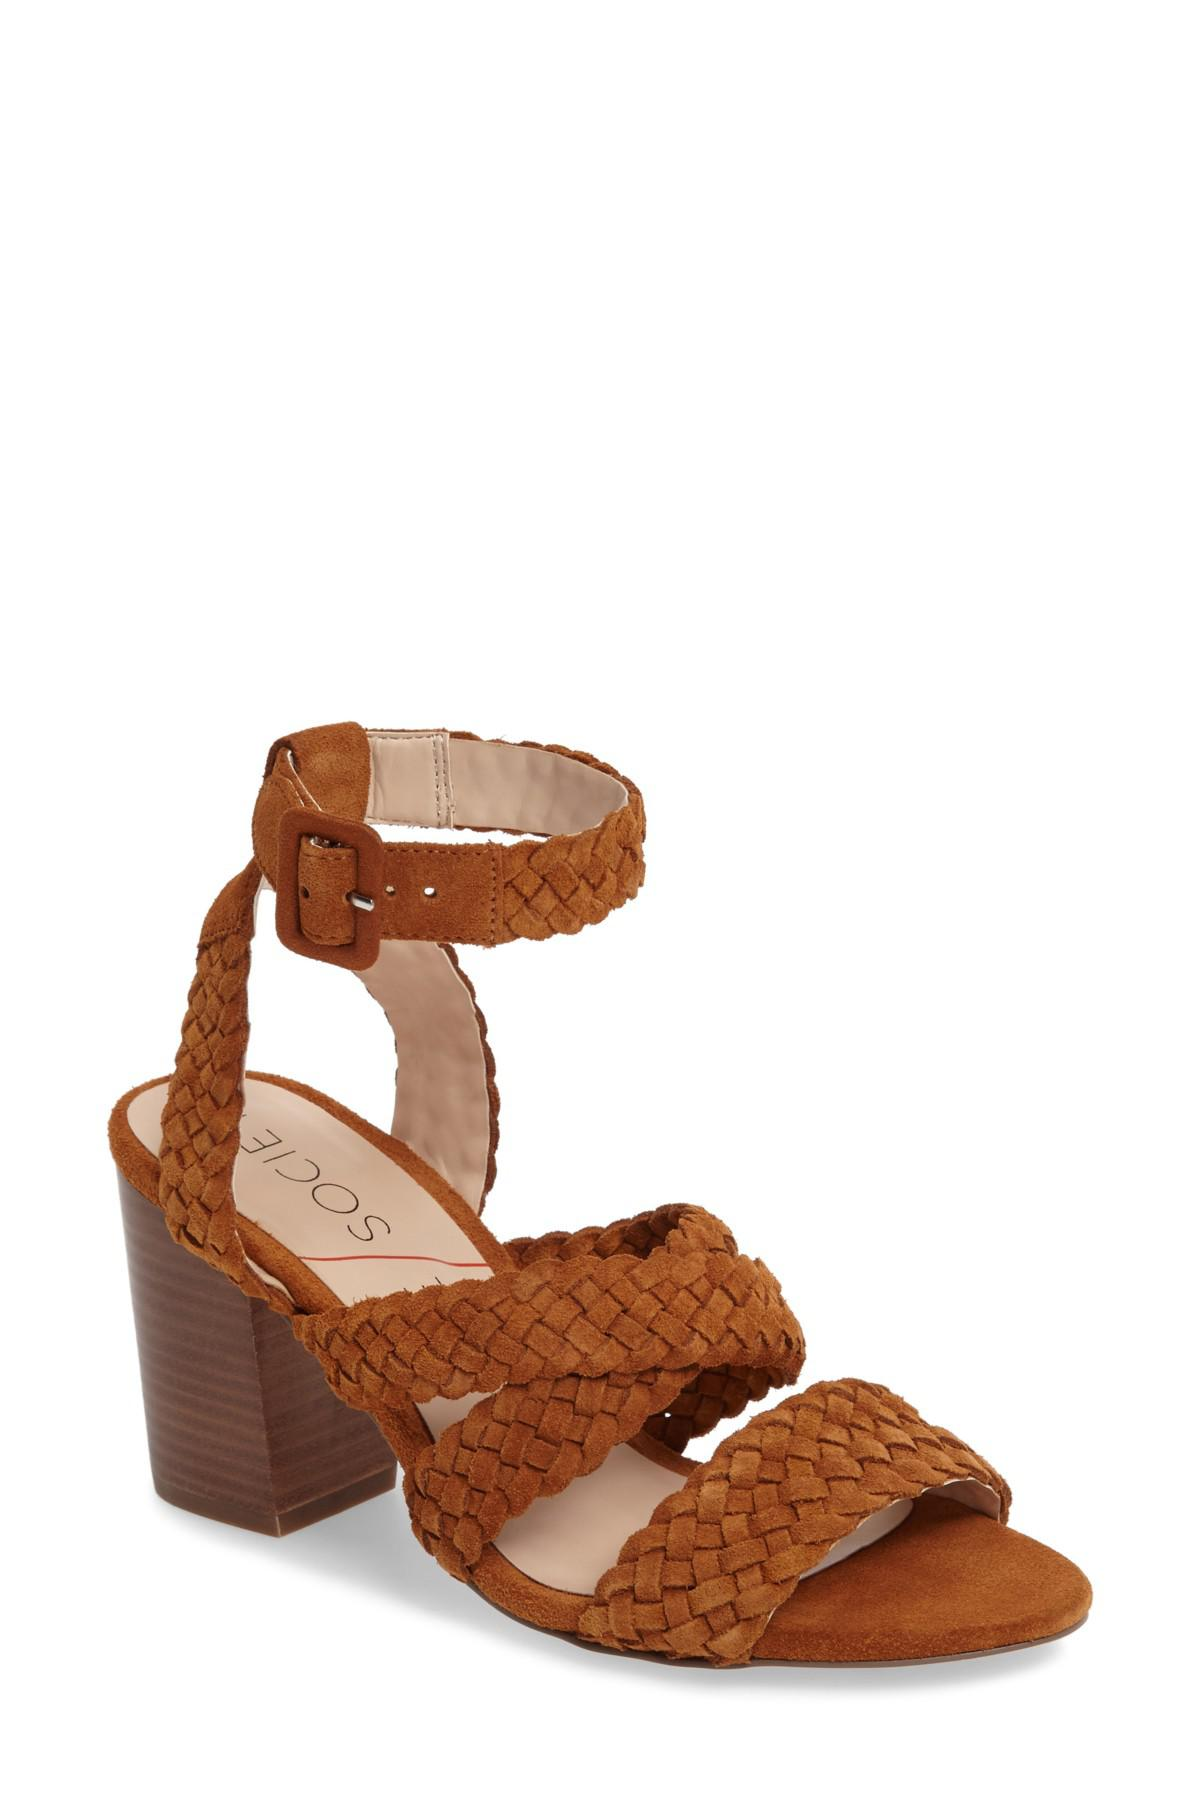 76a52bbca8c Lyst - Sole Society Evelina Block Heel Sandal in Brown - Save 59%